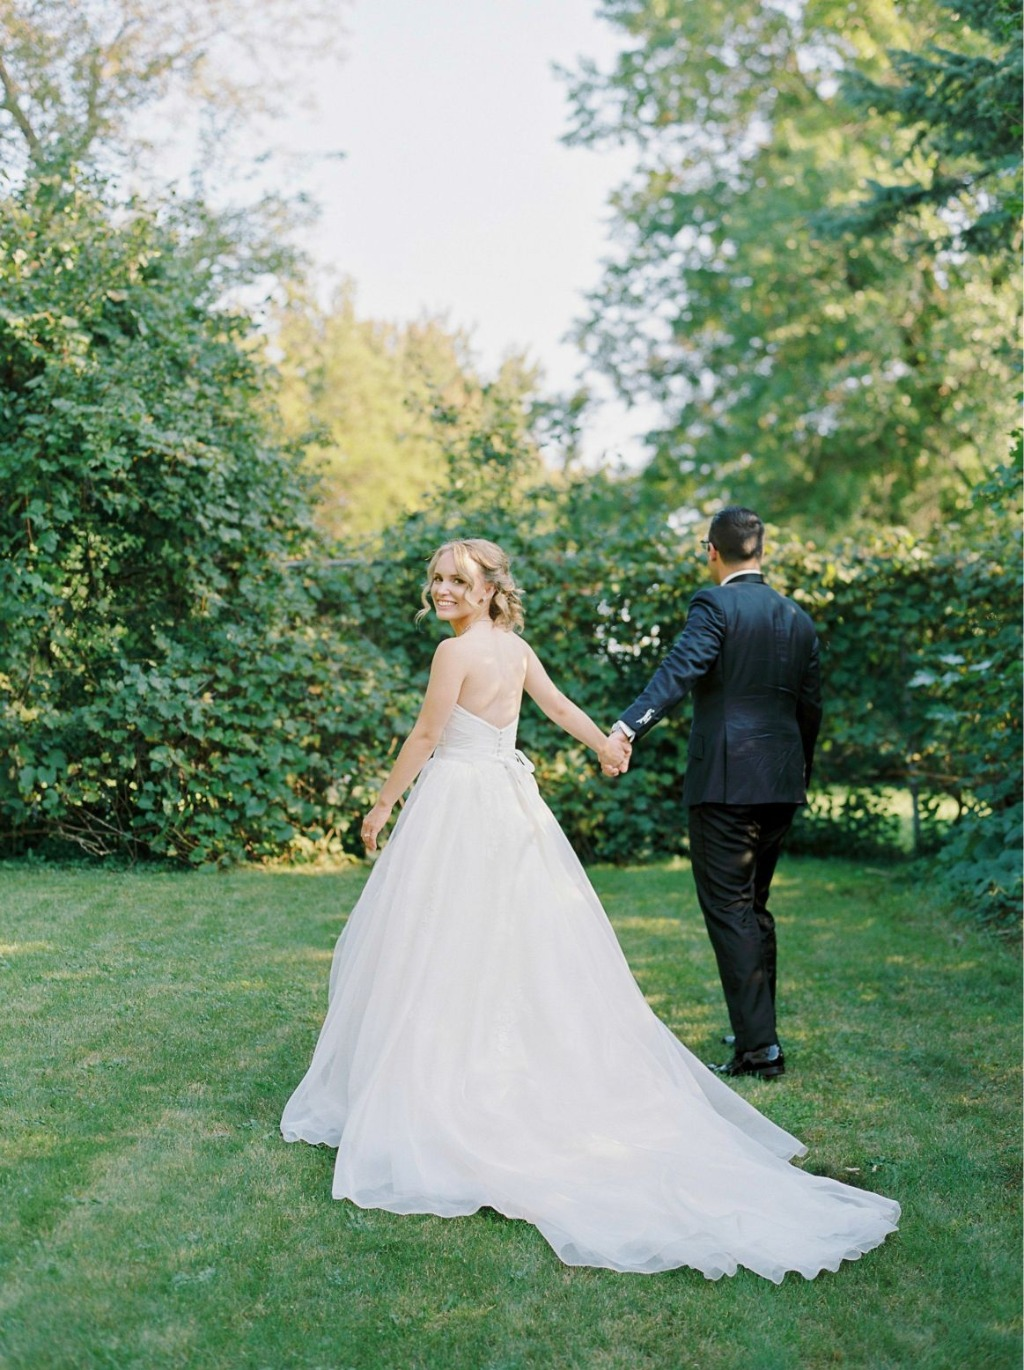 Amanda + Jon's Toronto Wedding at Graydon Hall. Astrid & Mercedes Divine gown. Photographer: Will Reid Photography | planning: